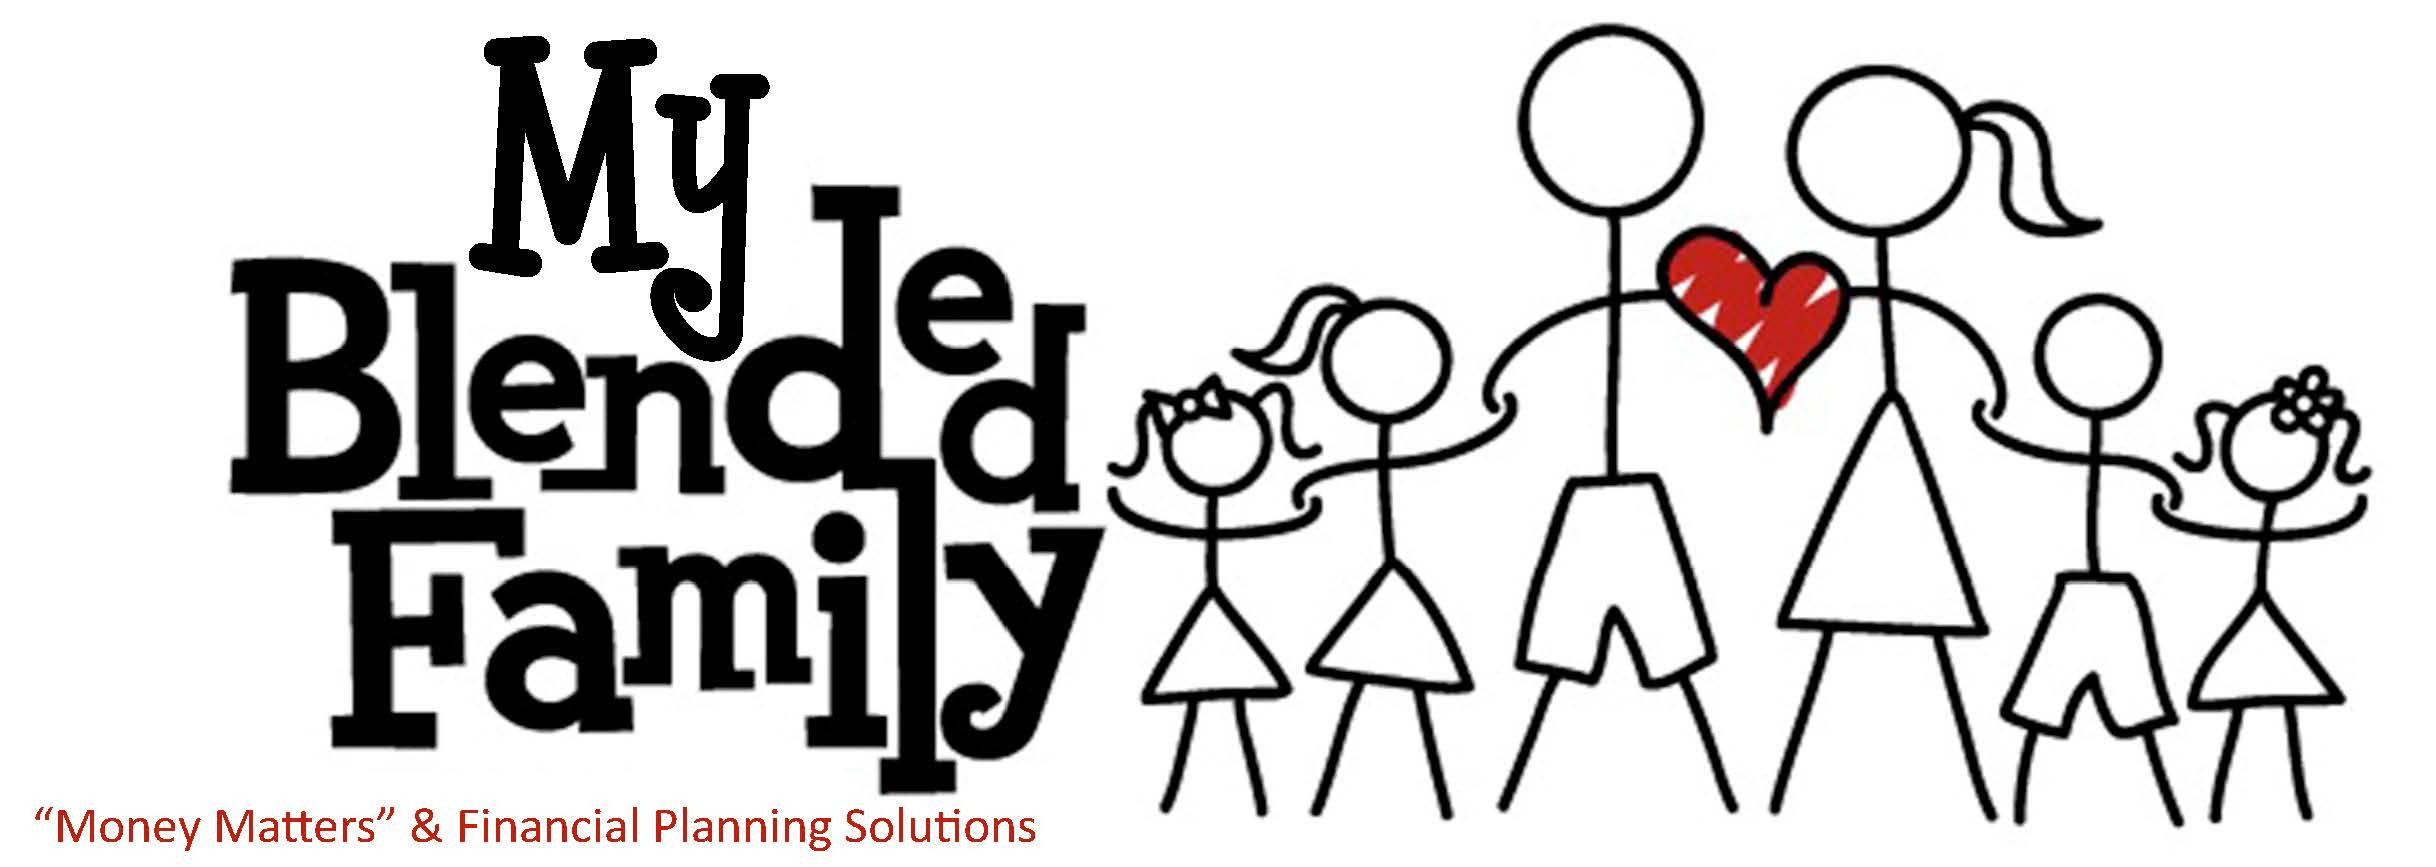 Blended Family Financial Planning